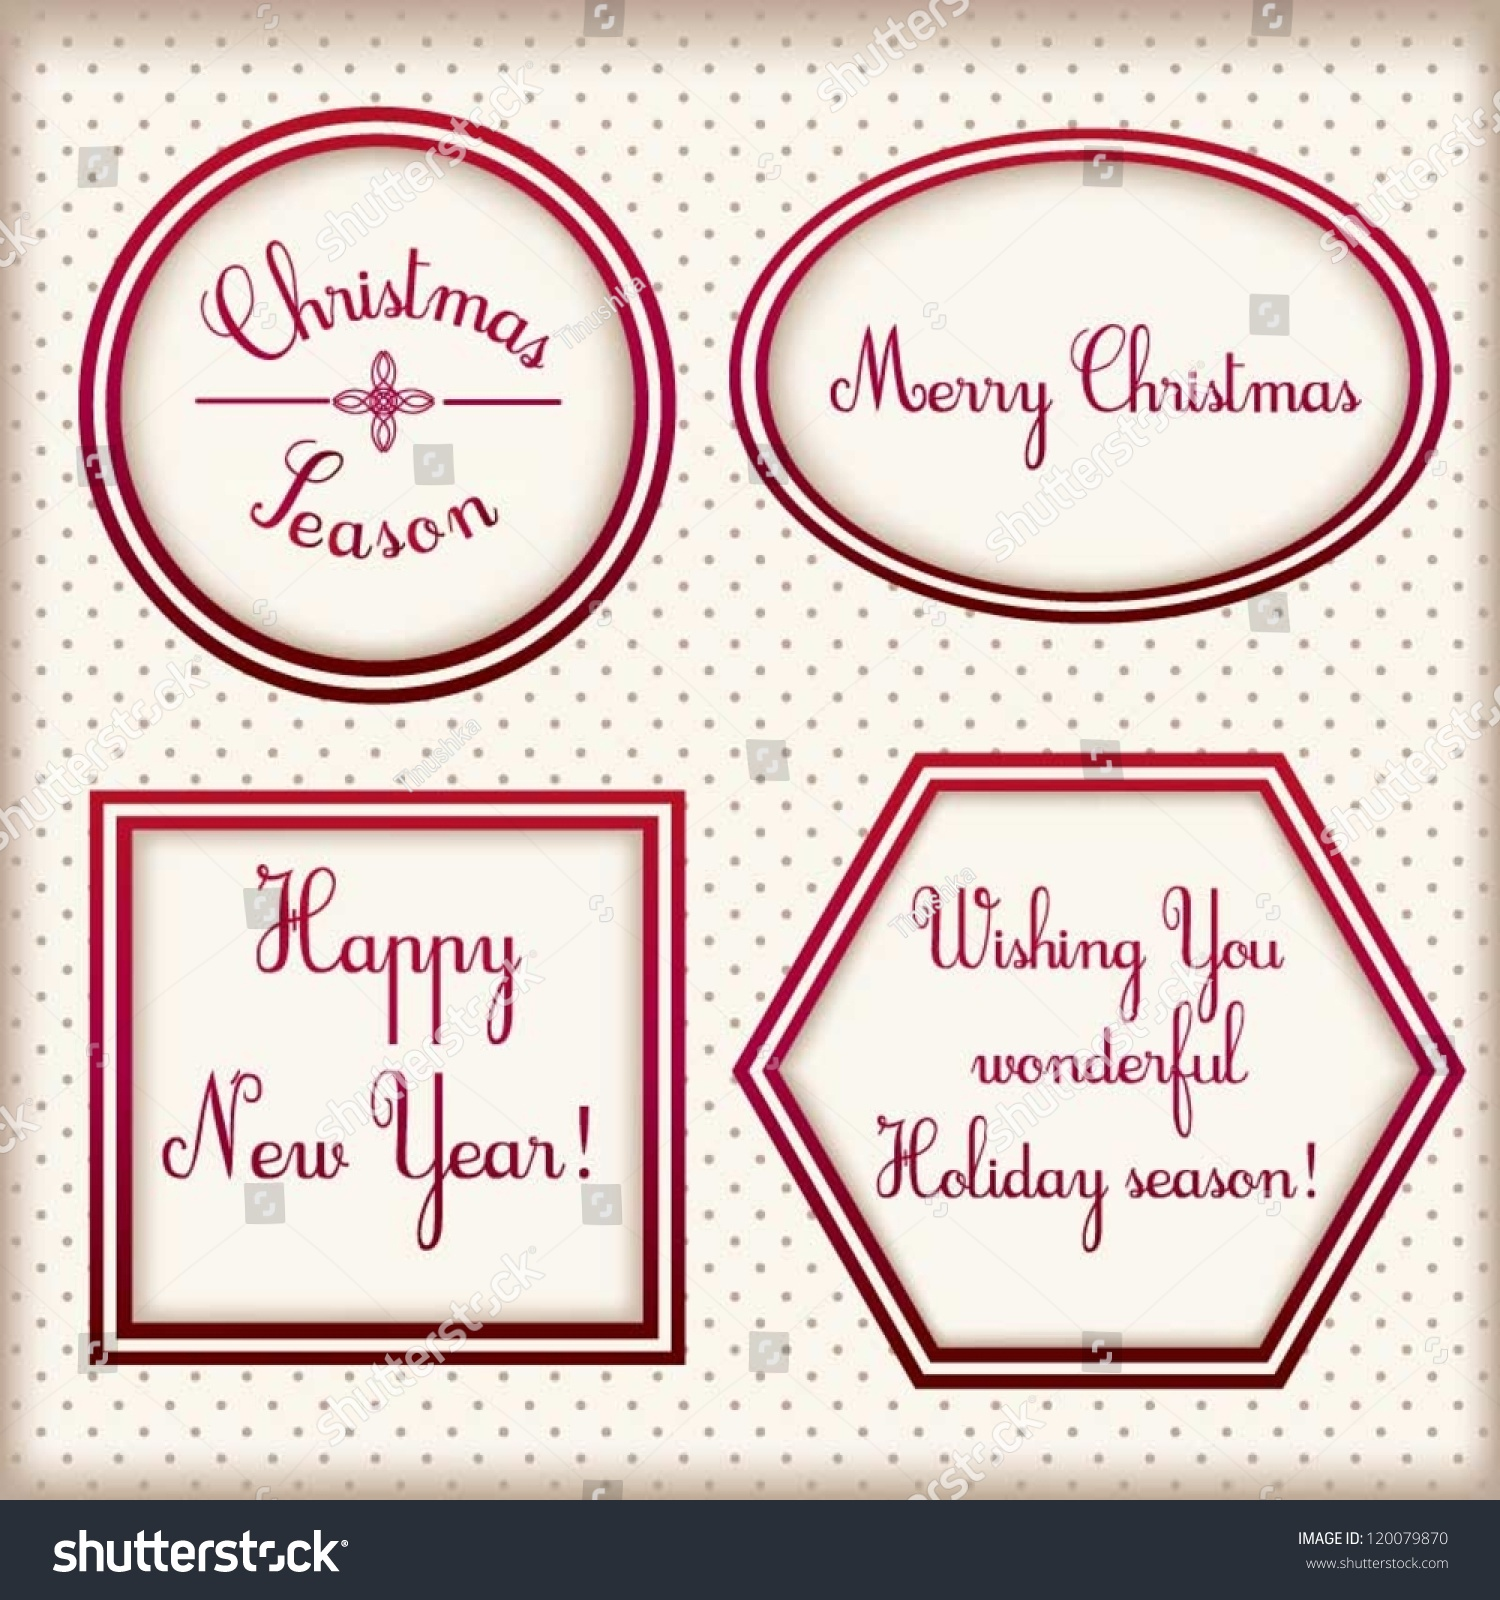 christmas and new year vintage elegant stylized beige labels with red satin border vector set